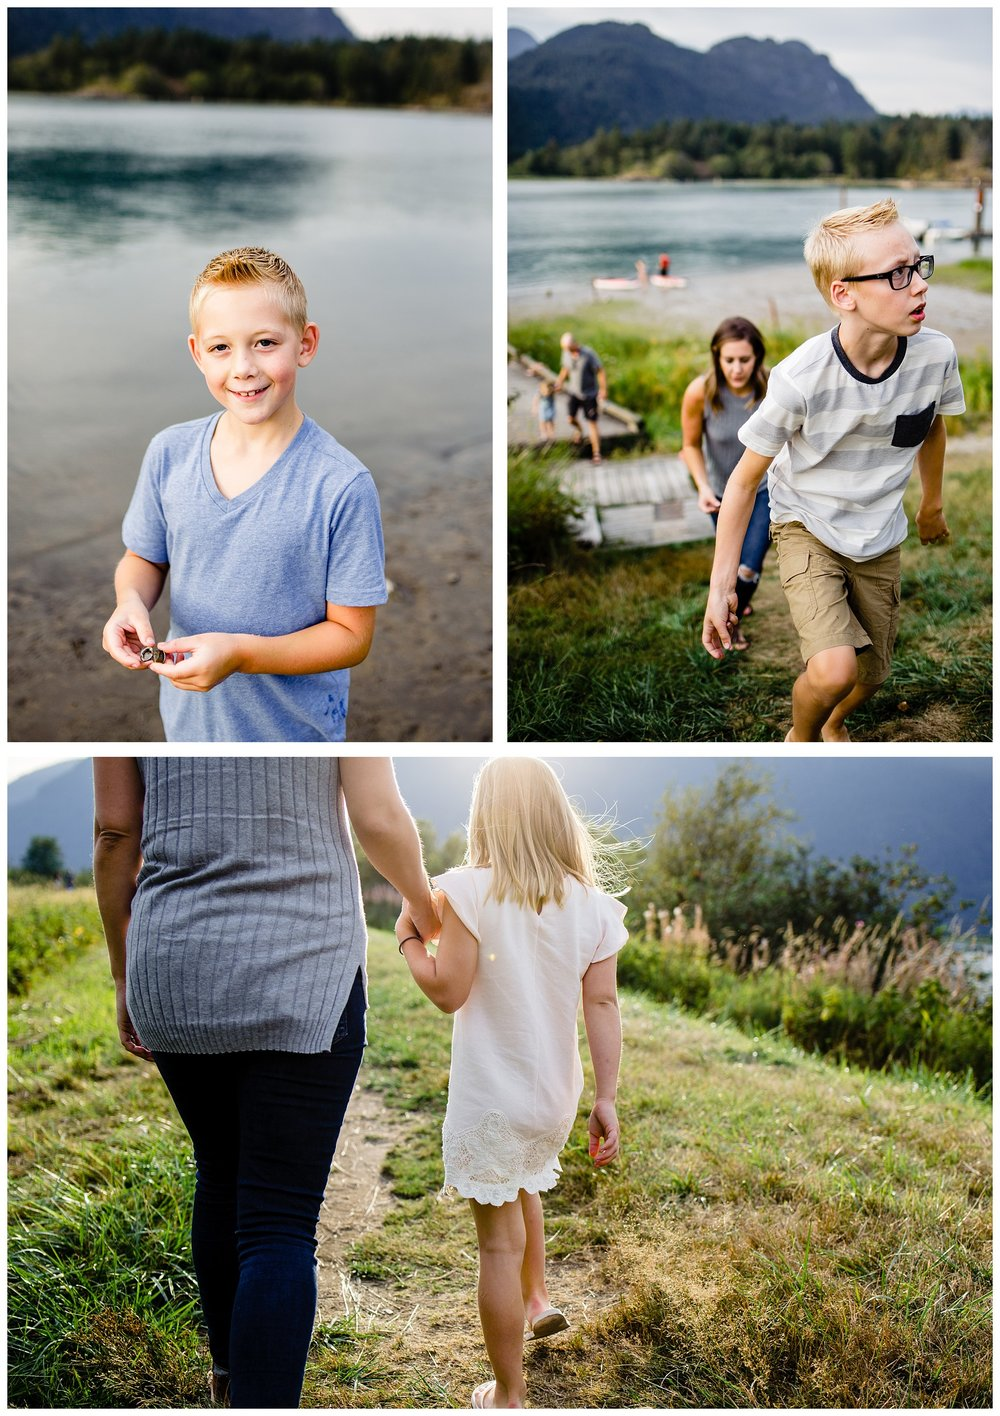 Pitt Lake Documentary Family Photographer Bubbles Mud Family of 6 Boys Girls Children_0092.jpg